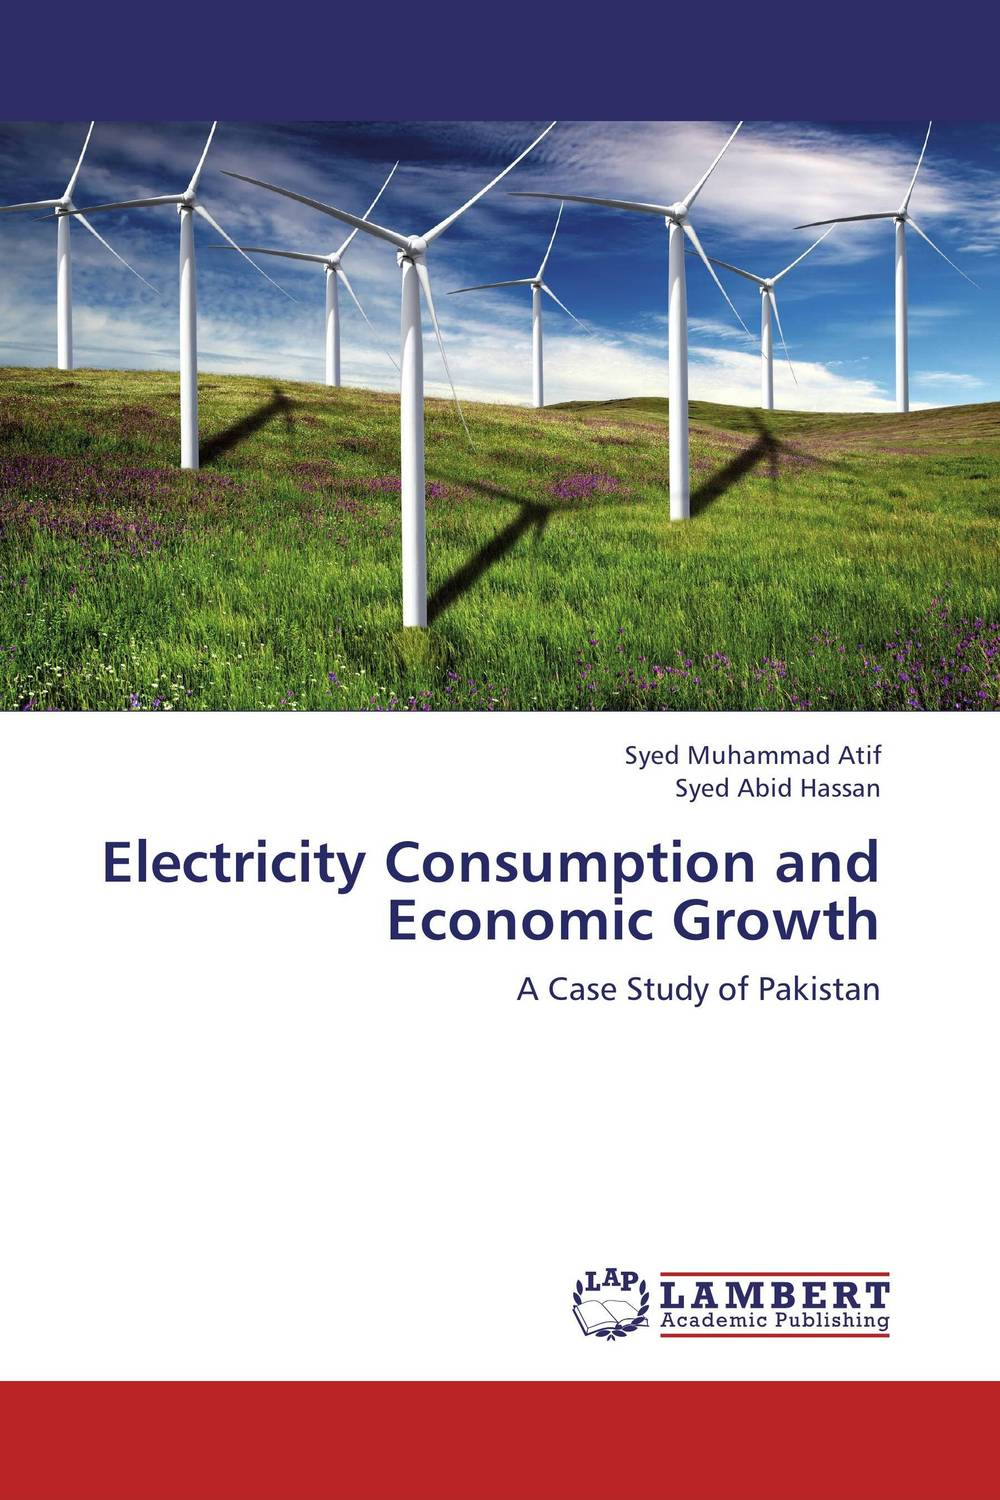 Electricity Consumption and Economic Growth t omay energy consumption and economic growth evidence from nonlinear panel cointegration and causality tests